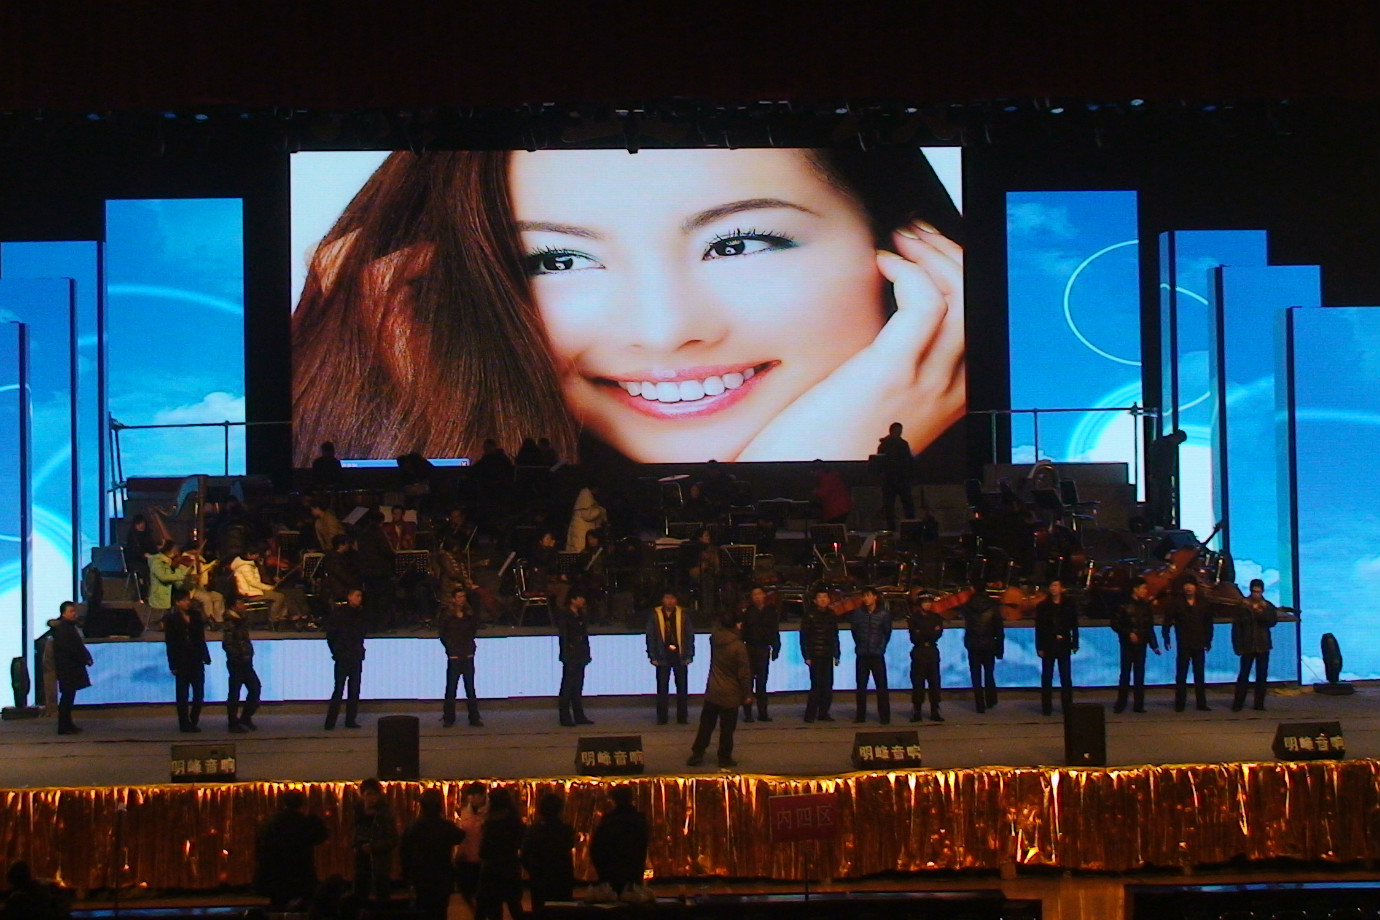 Stage LED Wall In China